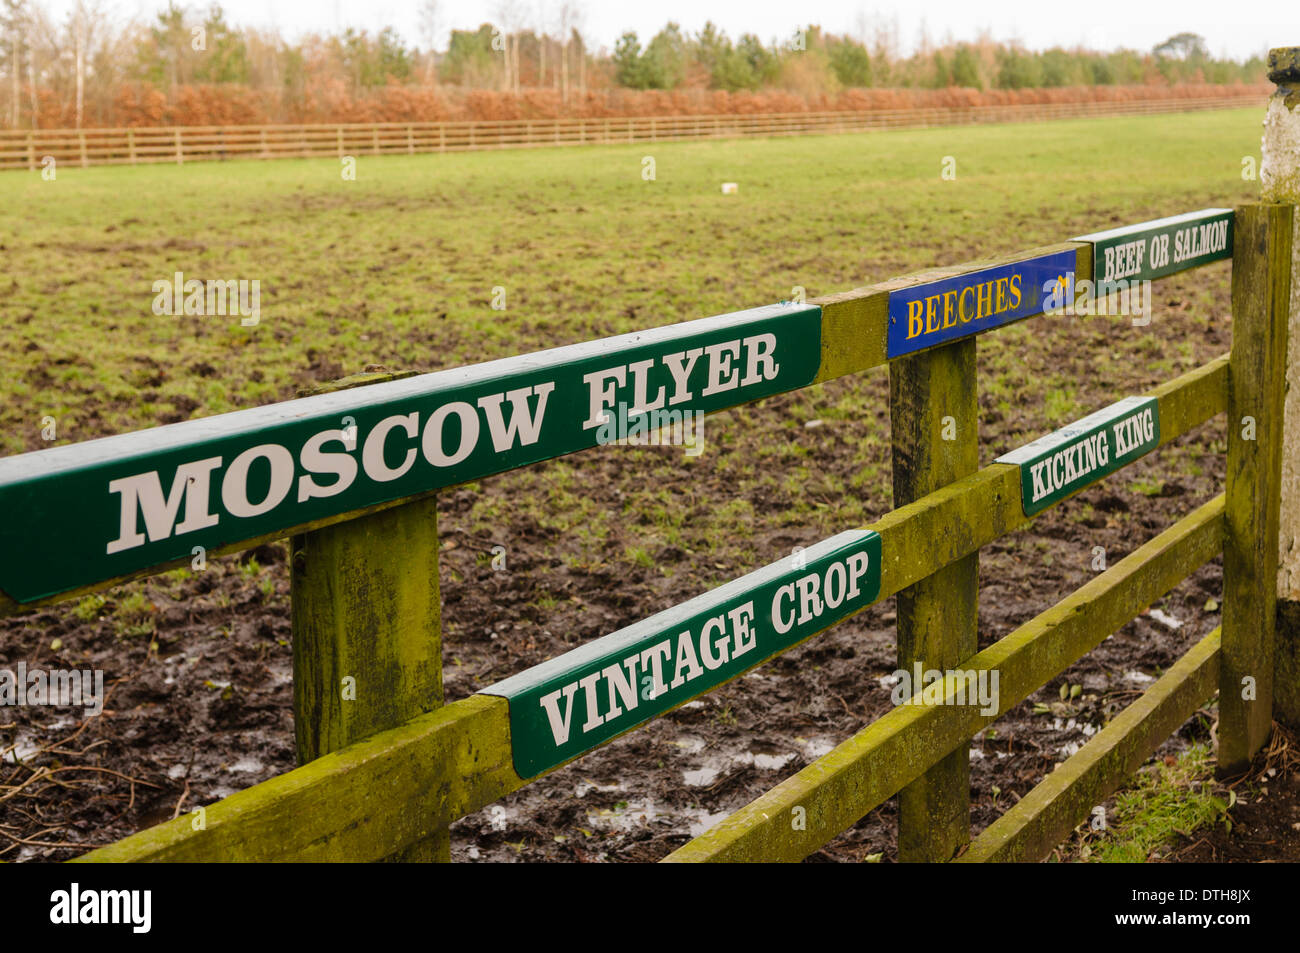 Signs on a field with famous racehorses Moscow Flyer, Beef or Salmon, Vintage Crop and Kicking King - Stock Image